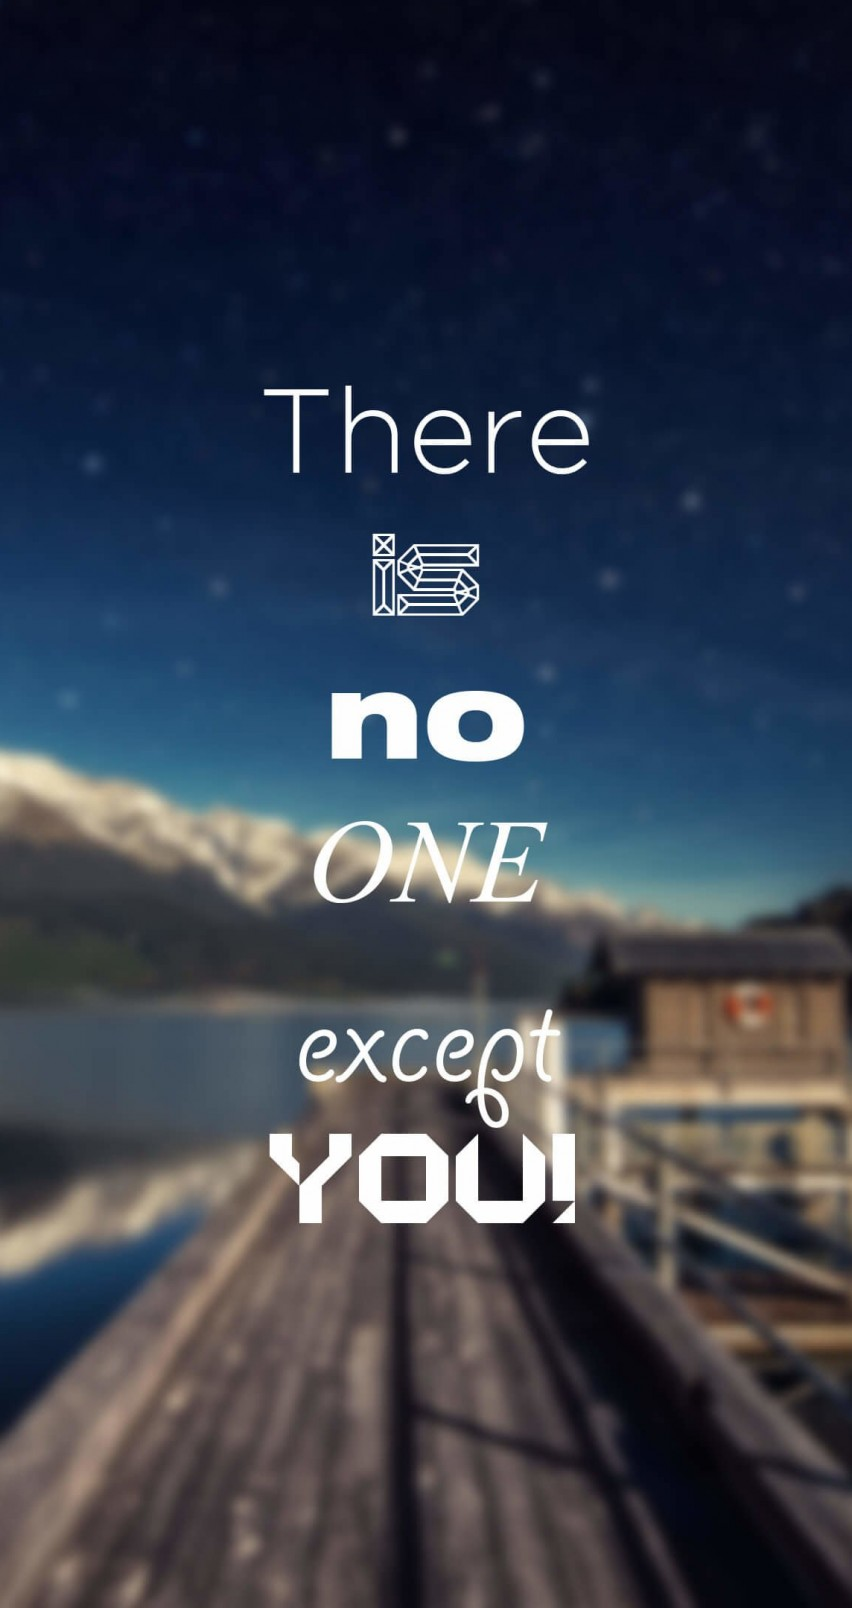 There Is No One Except You Wallpaper for Apple iPhone 6 / 6s